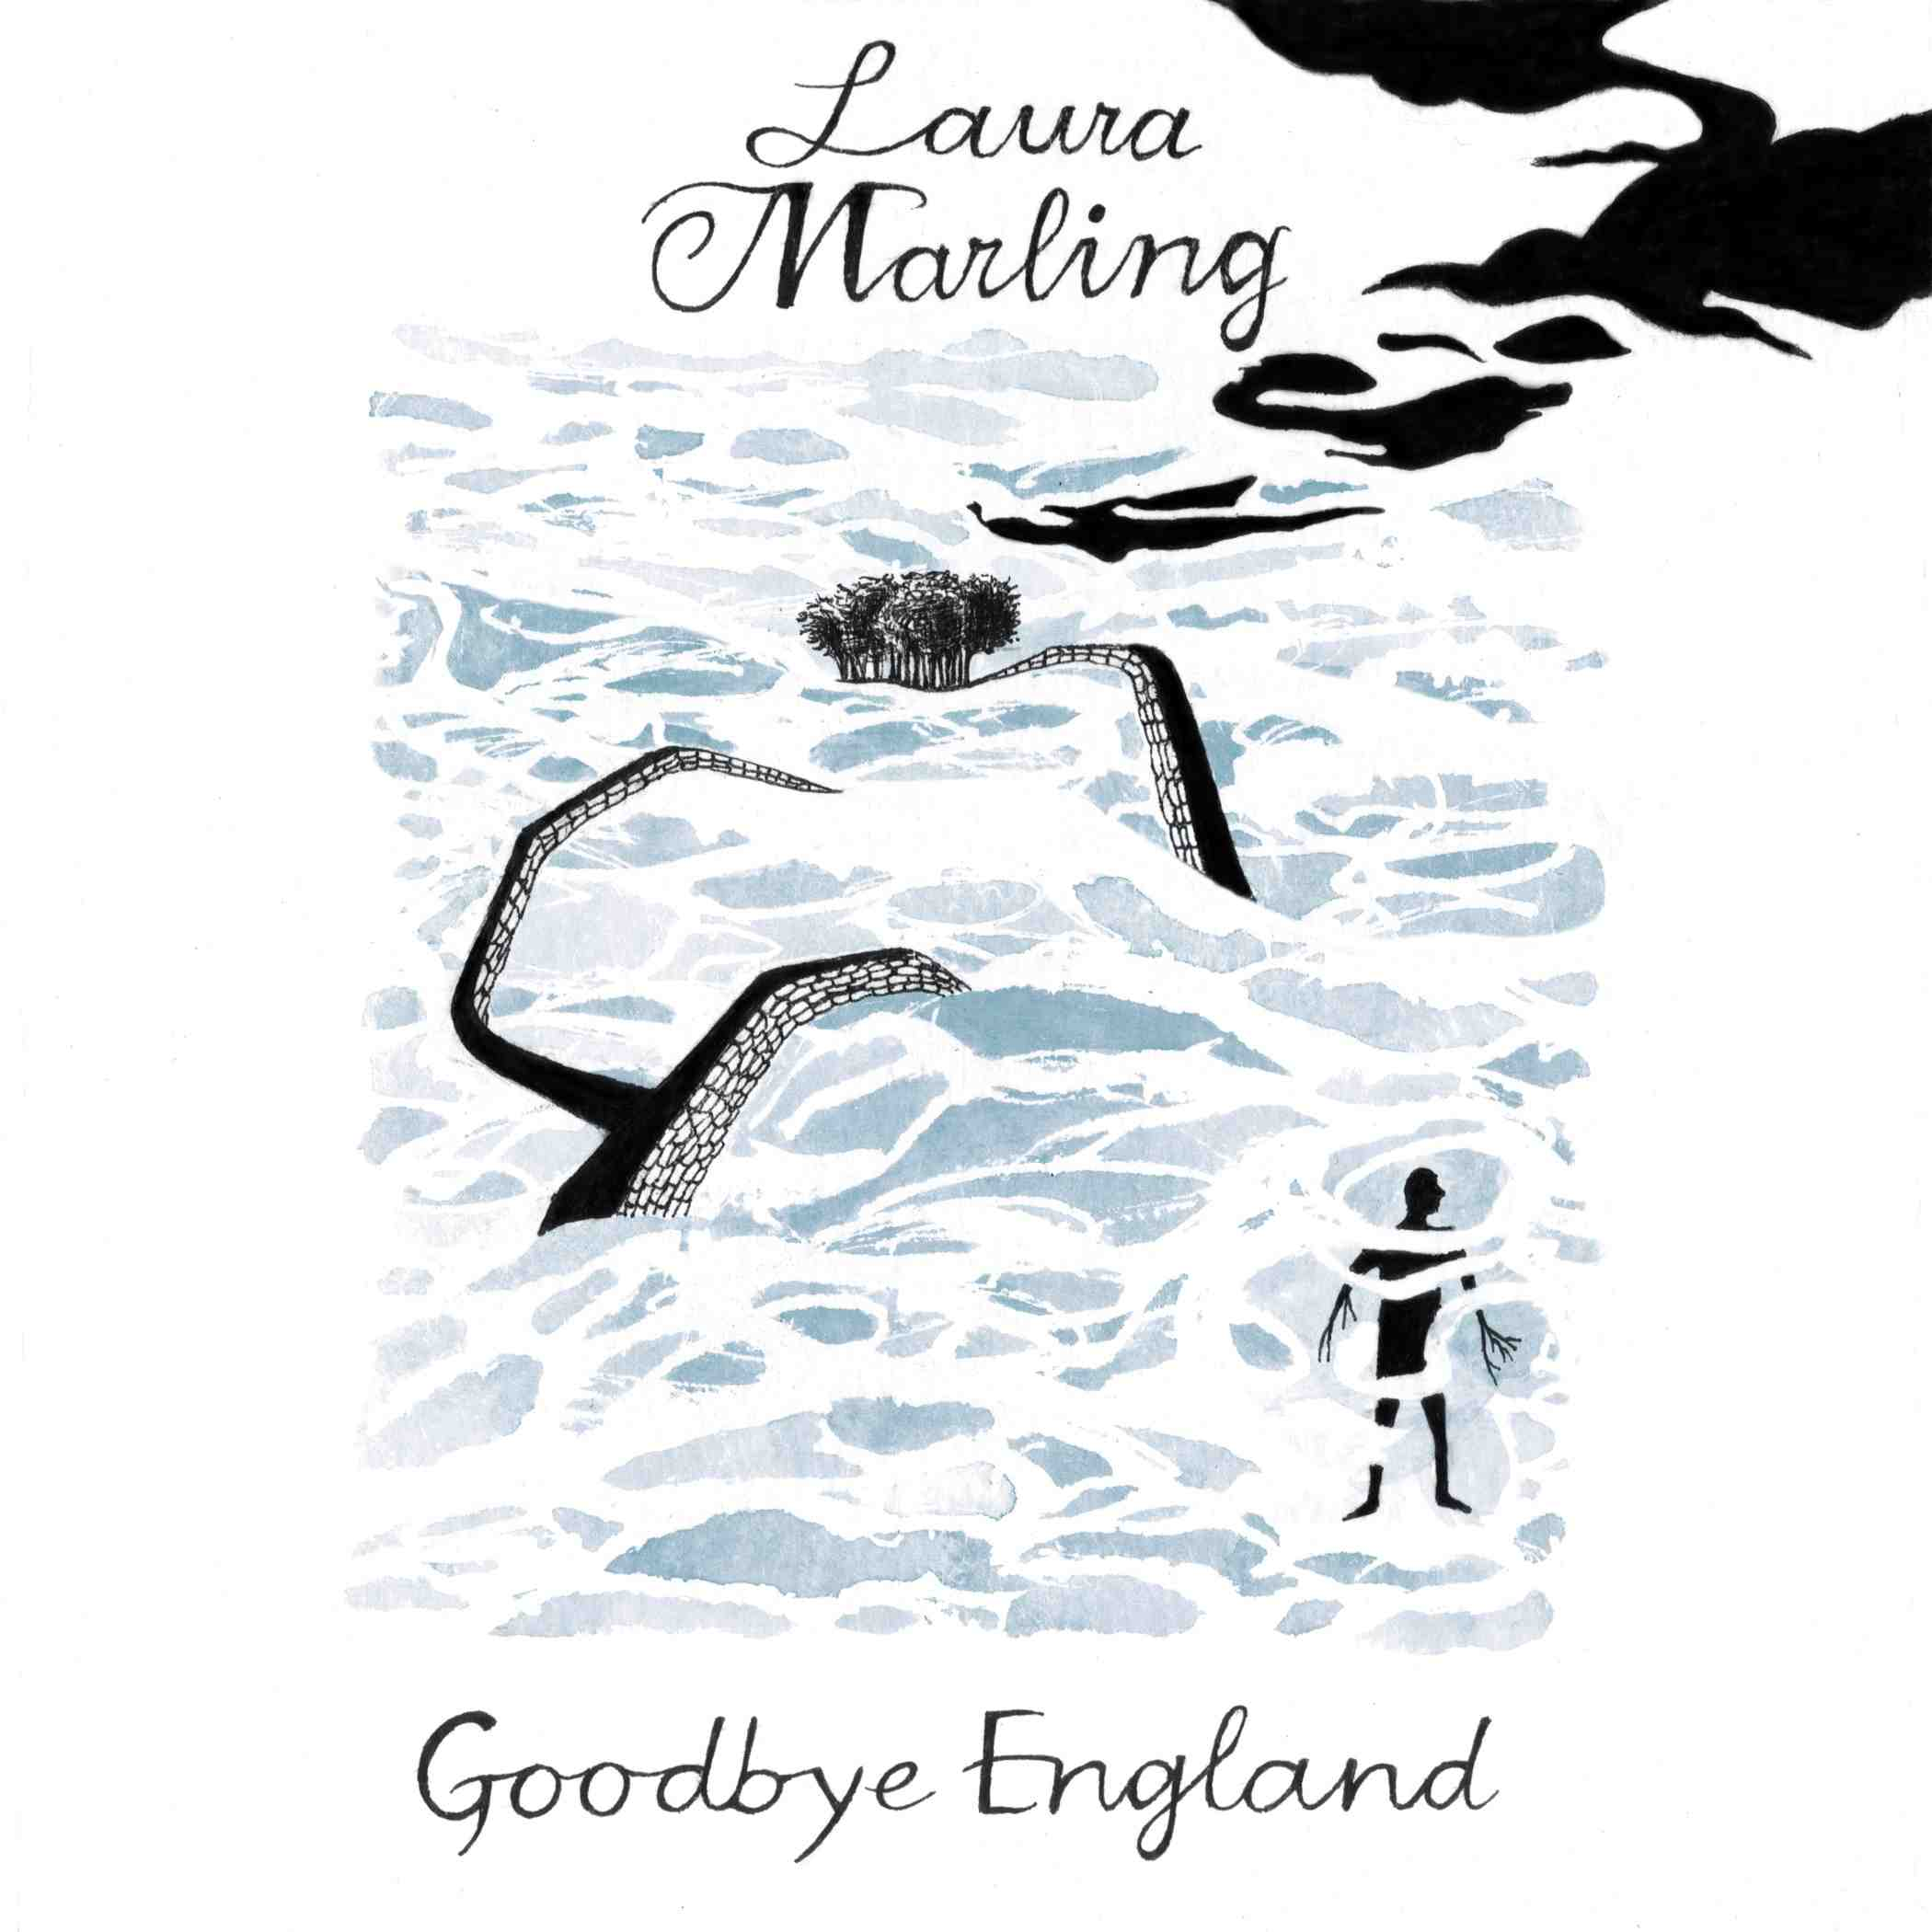 Cover art for Laura Marling's Goodbye England released